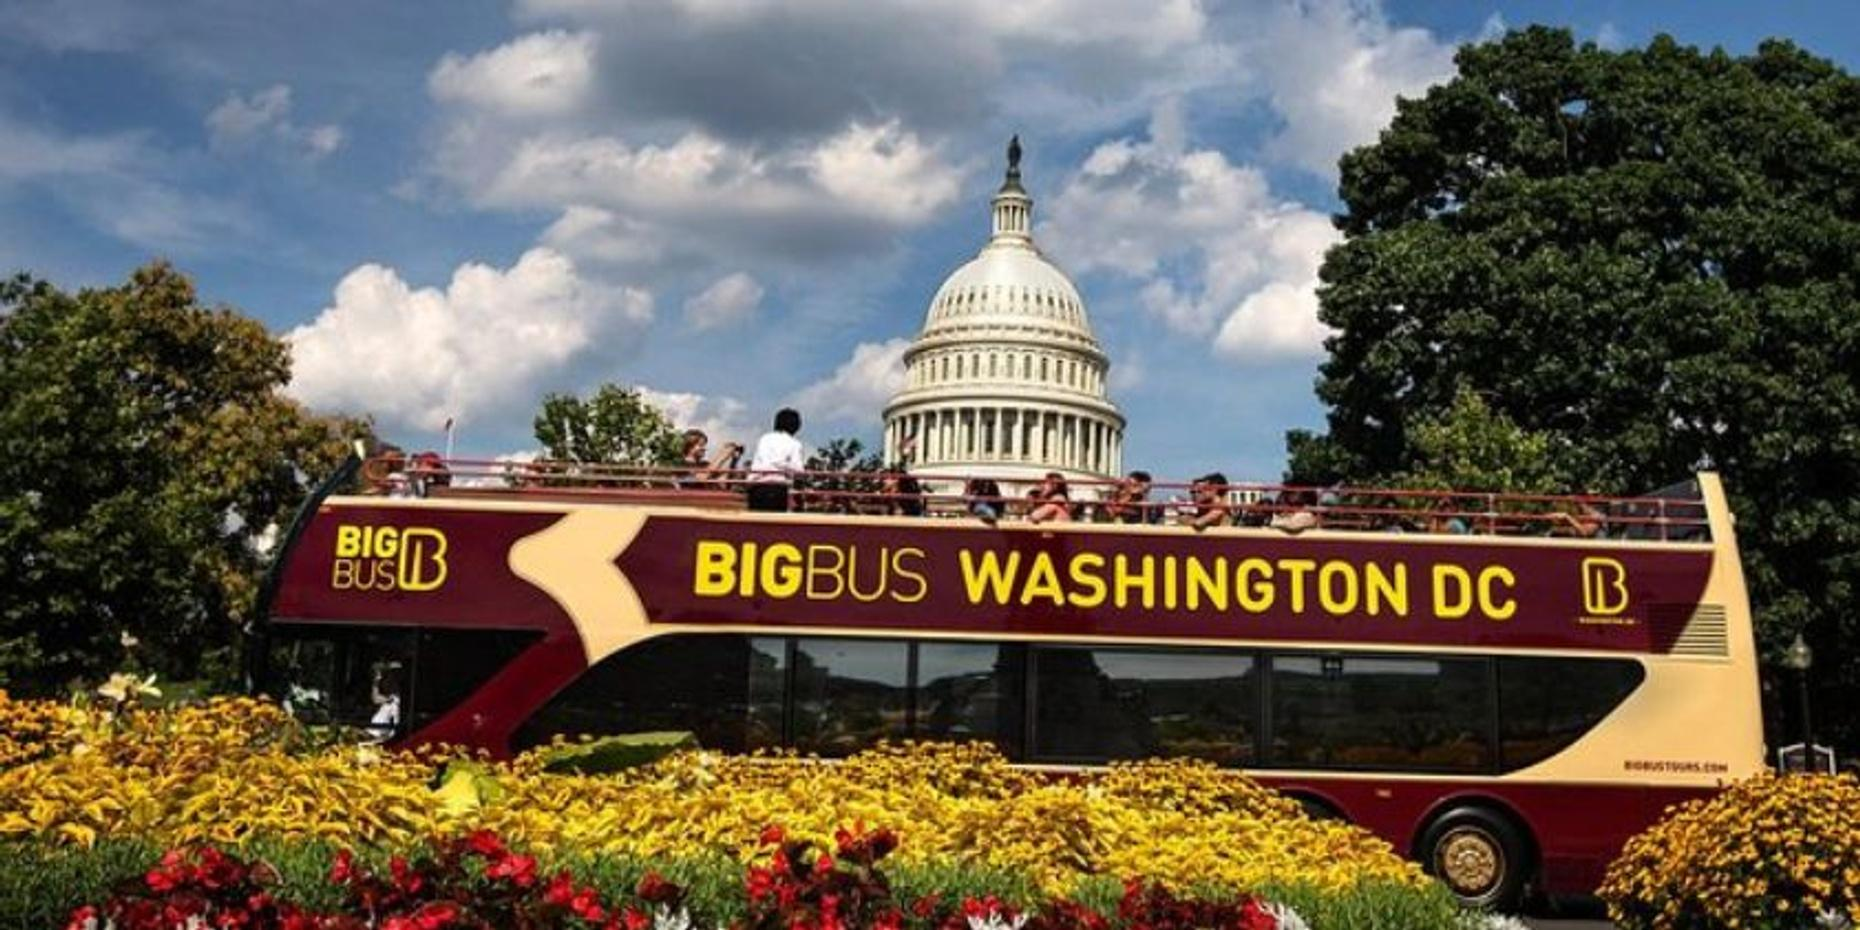 Premium 2-Day Hop-On Hop-Off Bus Tour of Washington DC